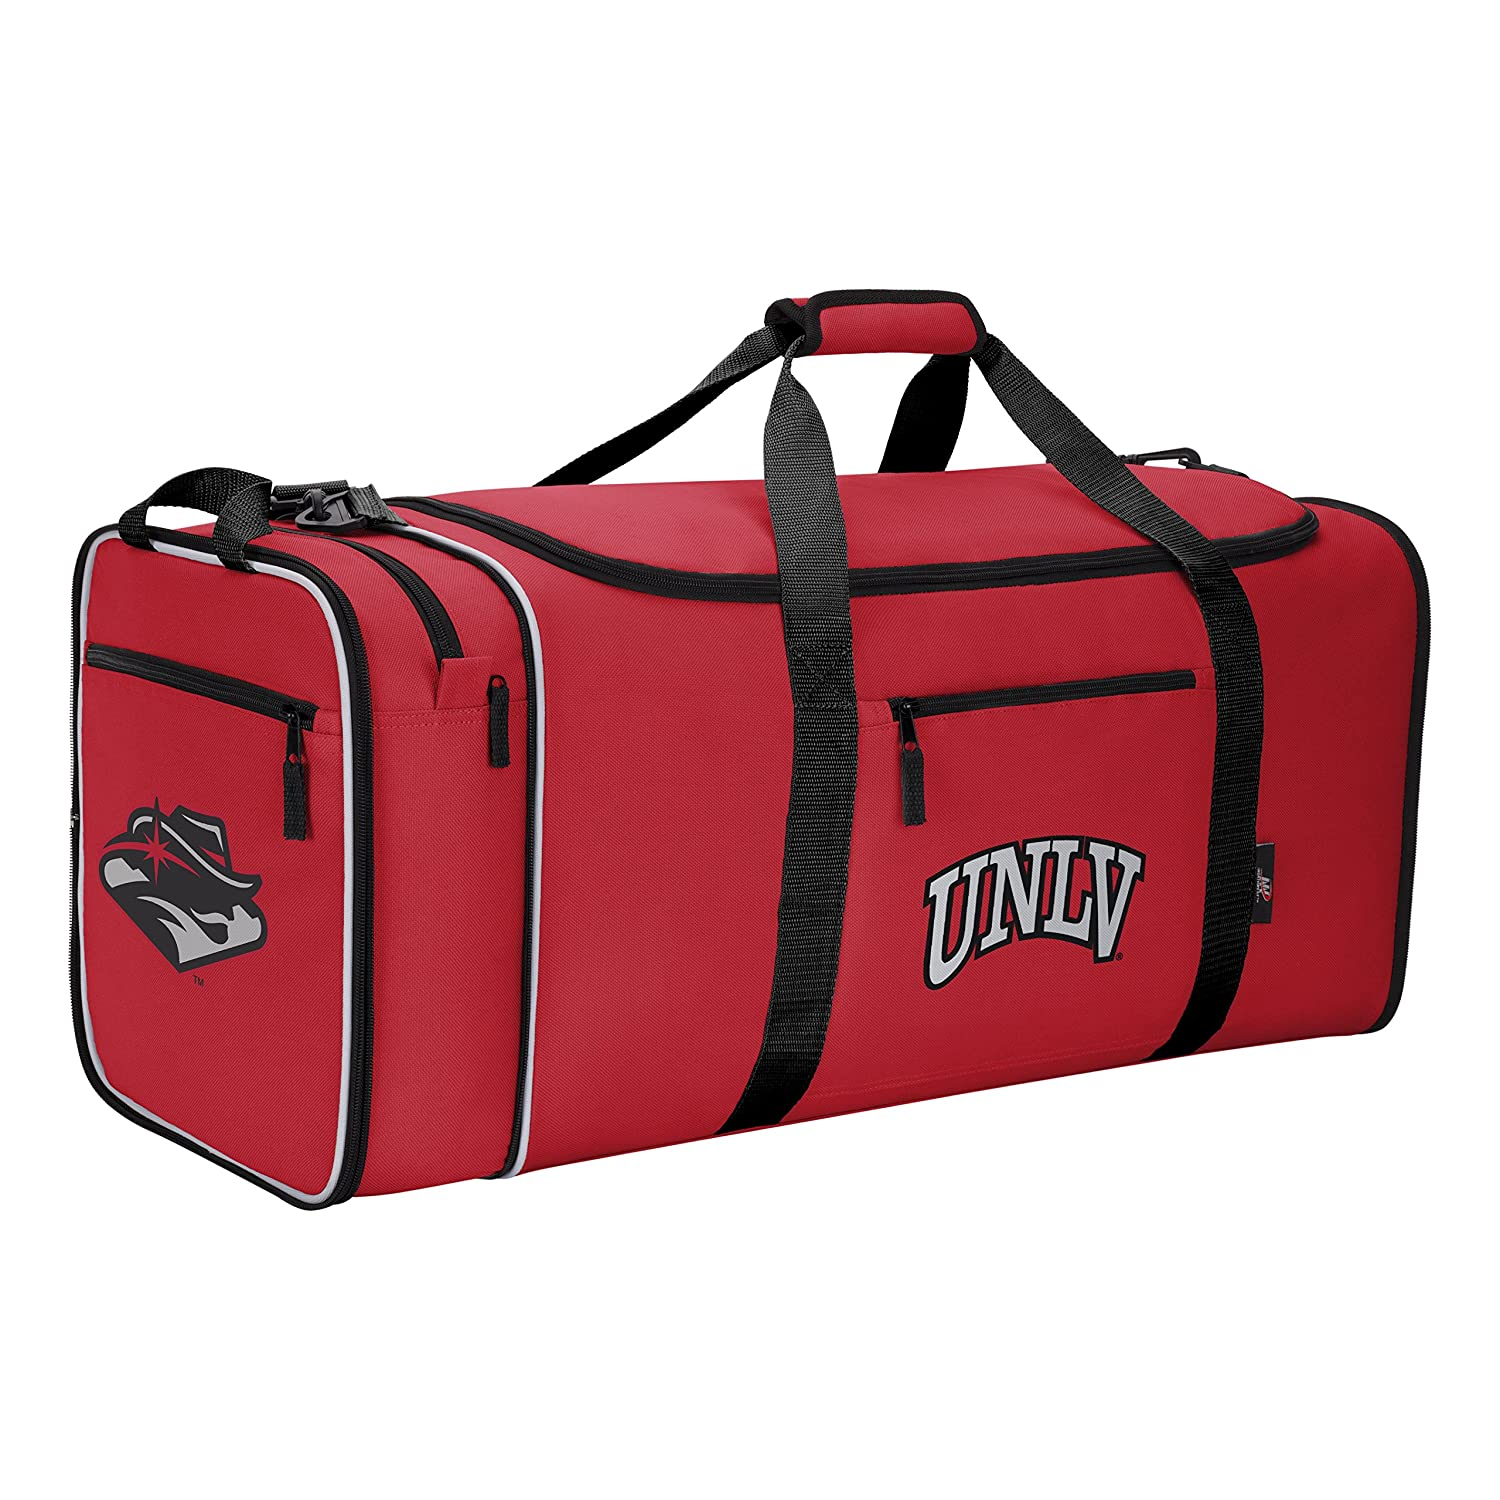 c8f09281ca The Northwest Company Officially Licensed NCAA Steal Duffel Bag Blue  C11COL C7241 0004 AMZ  1540898518-42164  -  24.12